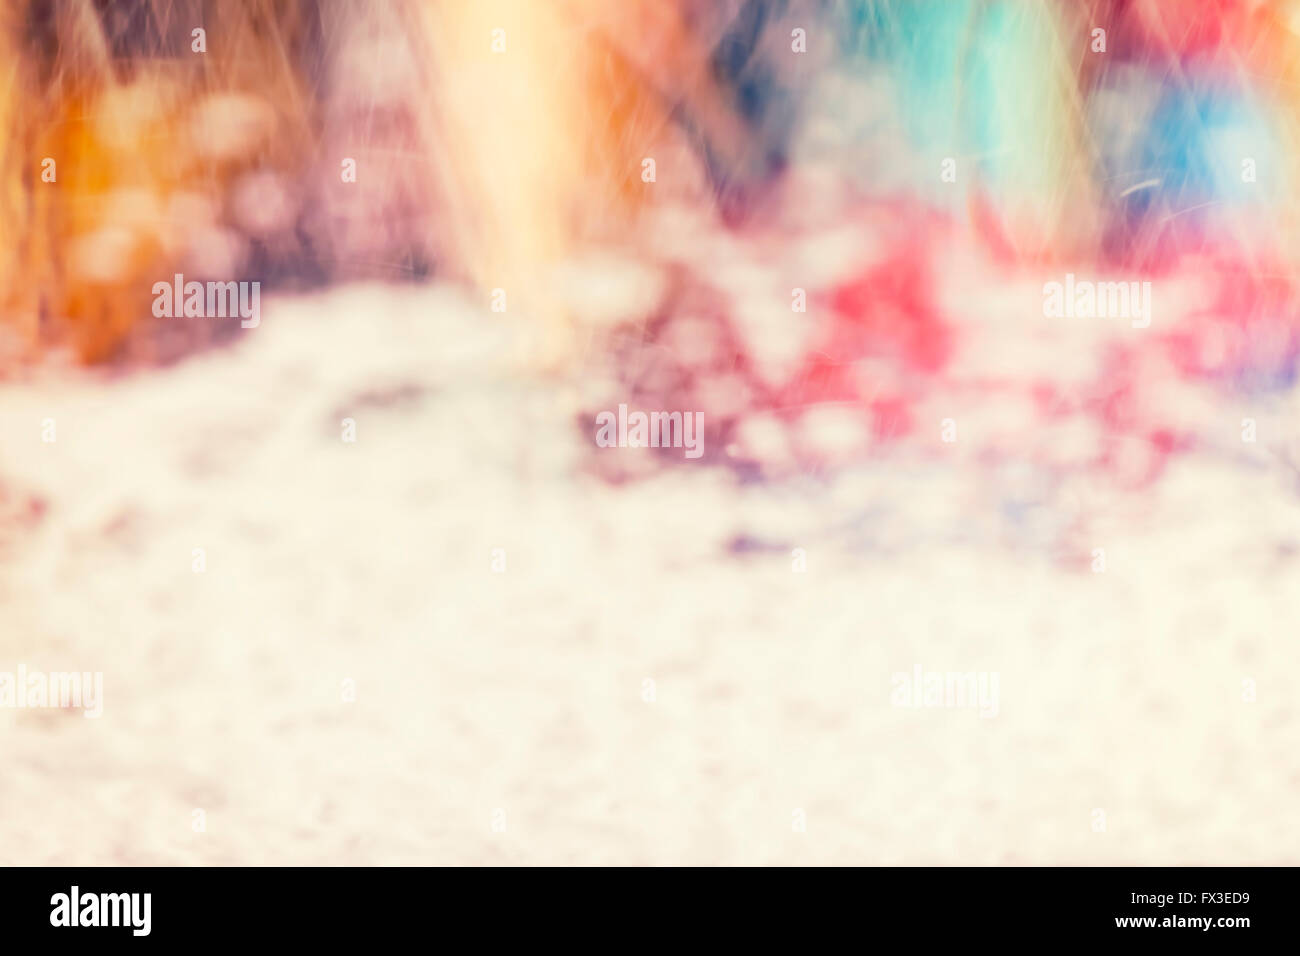 Vintage toned blurred picture made inside of a car in car wash, abstract background. - Stock Image